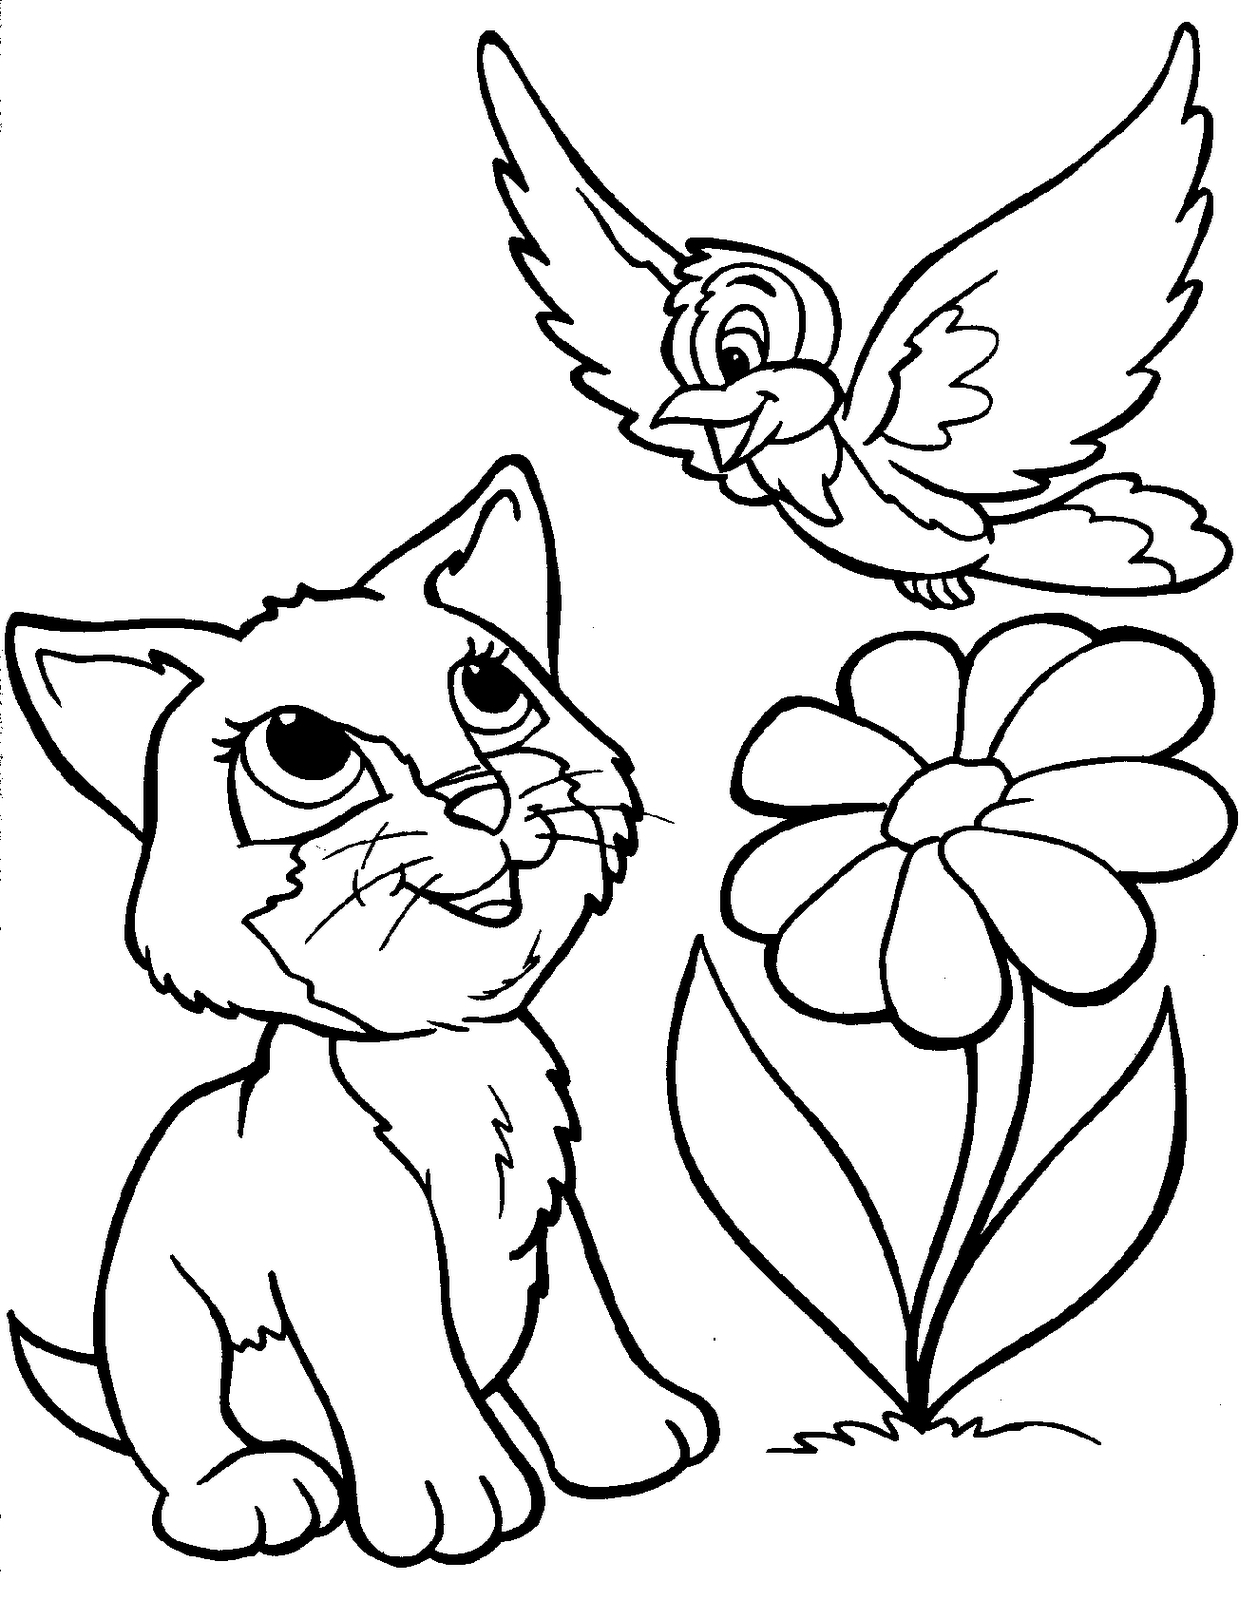 Cat In The Hat Coloring Pages Free Printable | Animal Coloring - Free Printable Animal Coloring Pages